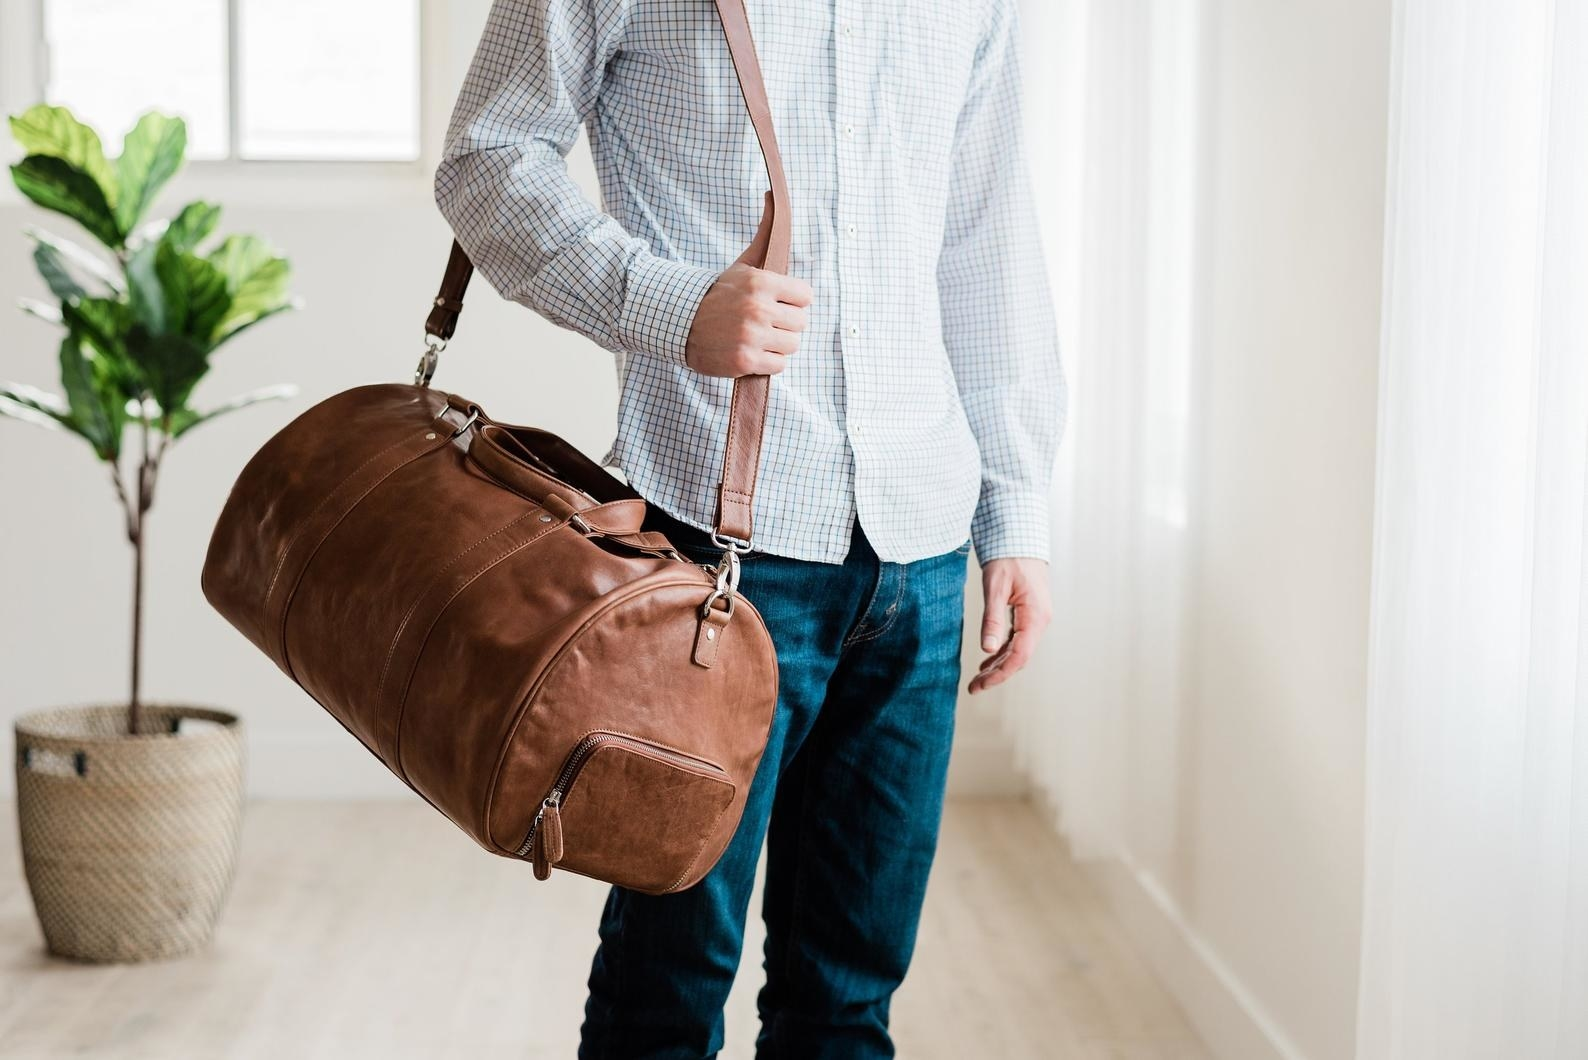 The oval-shaped brown leather bag with a long shoulder strap over a model's shoulder